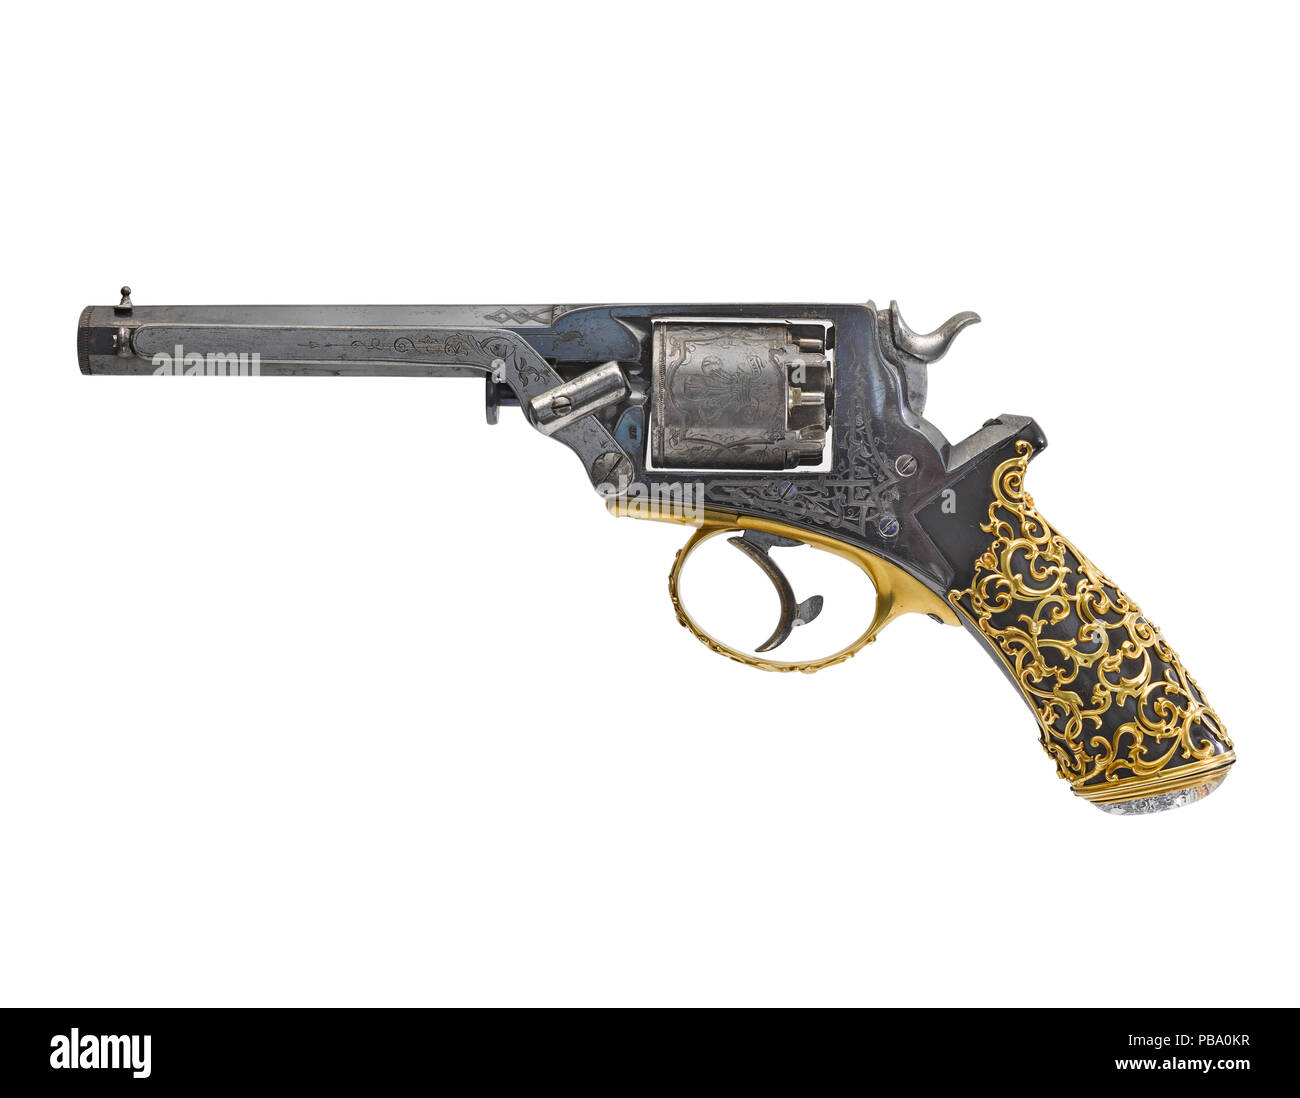 Percussion five-shot revolver - Stock Image